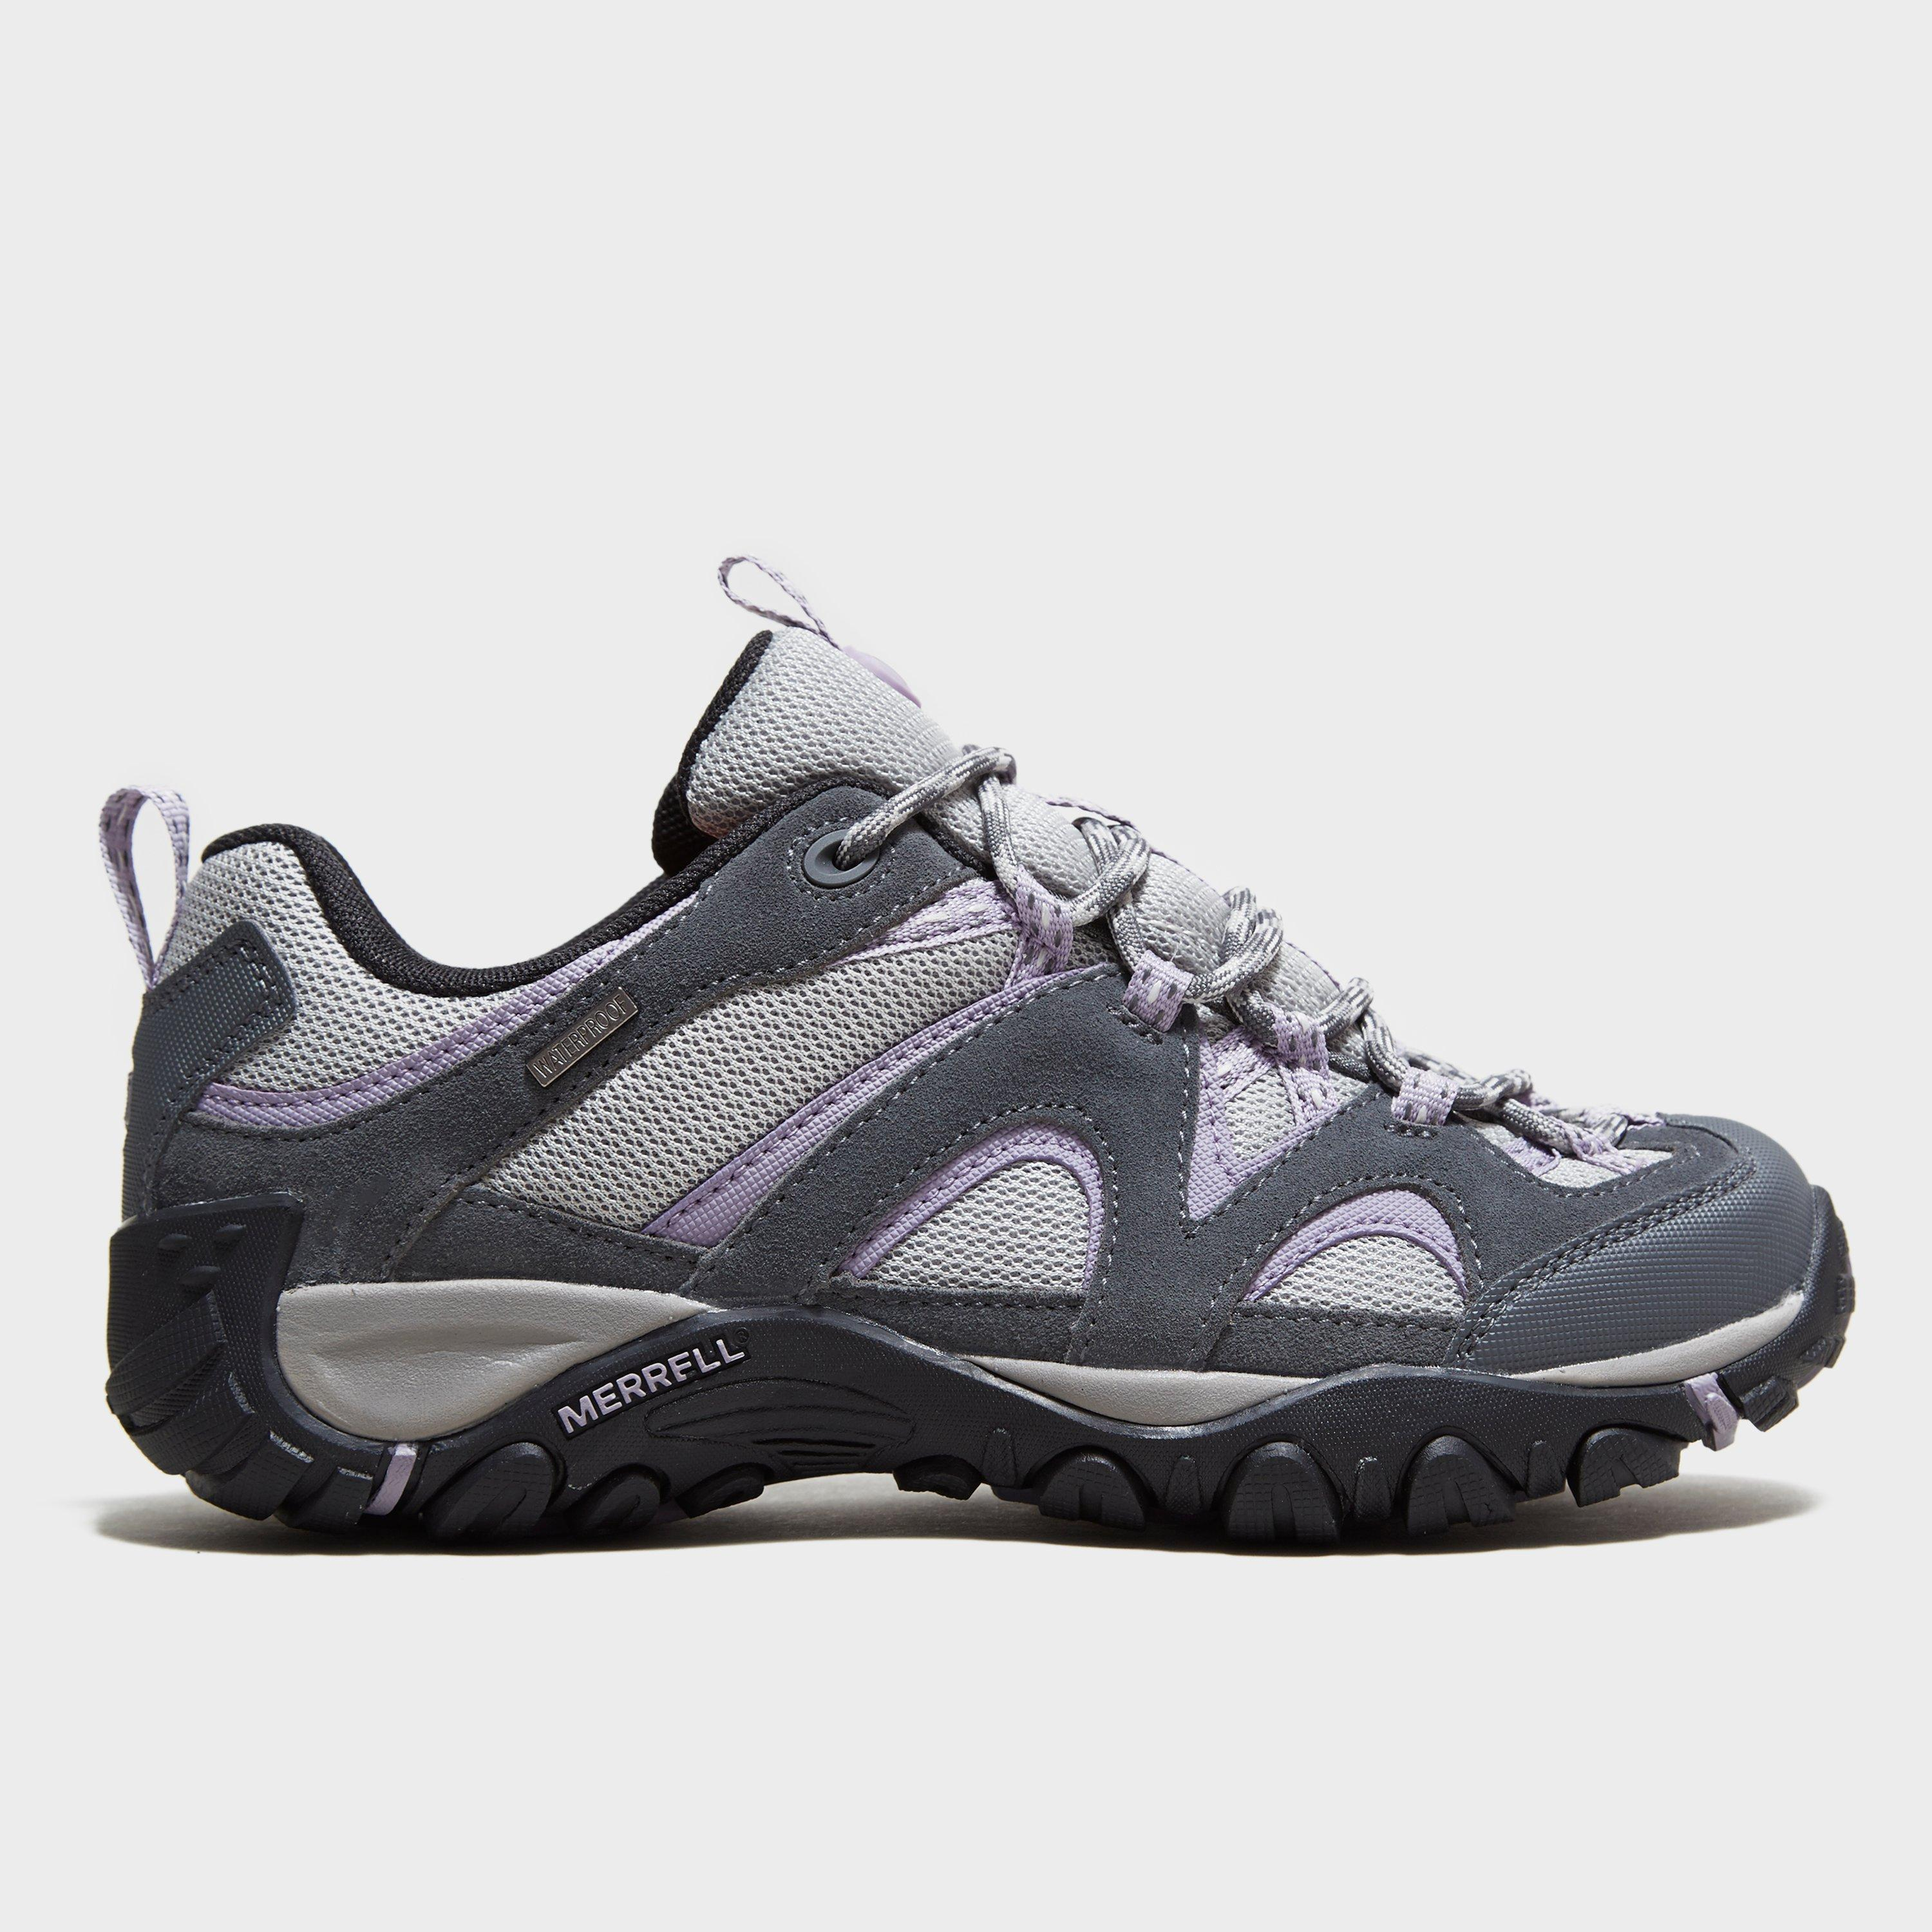 Walking Boots Walking Shoes Trail Running Shoes Snow Boots Wellingtons